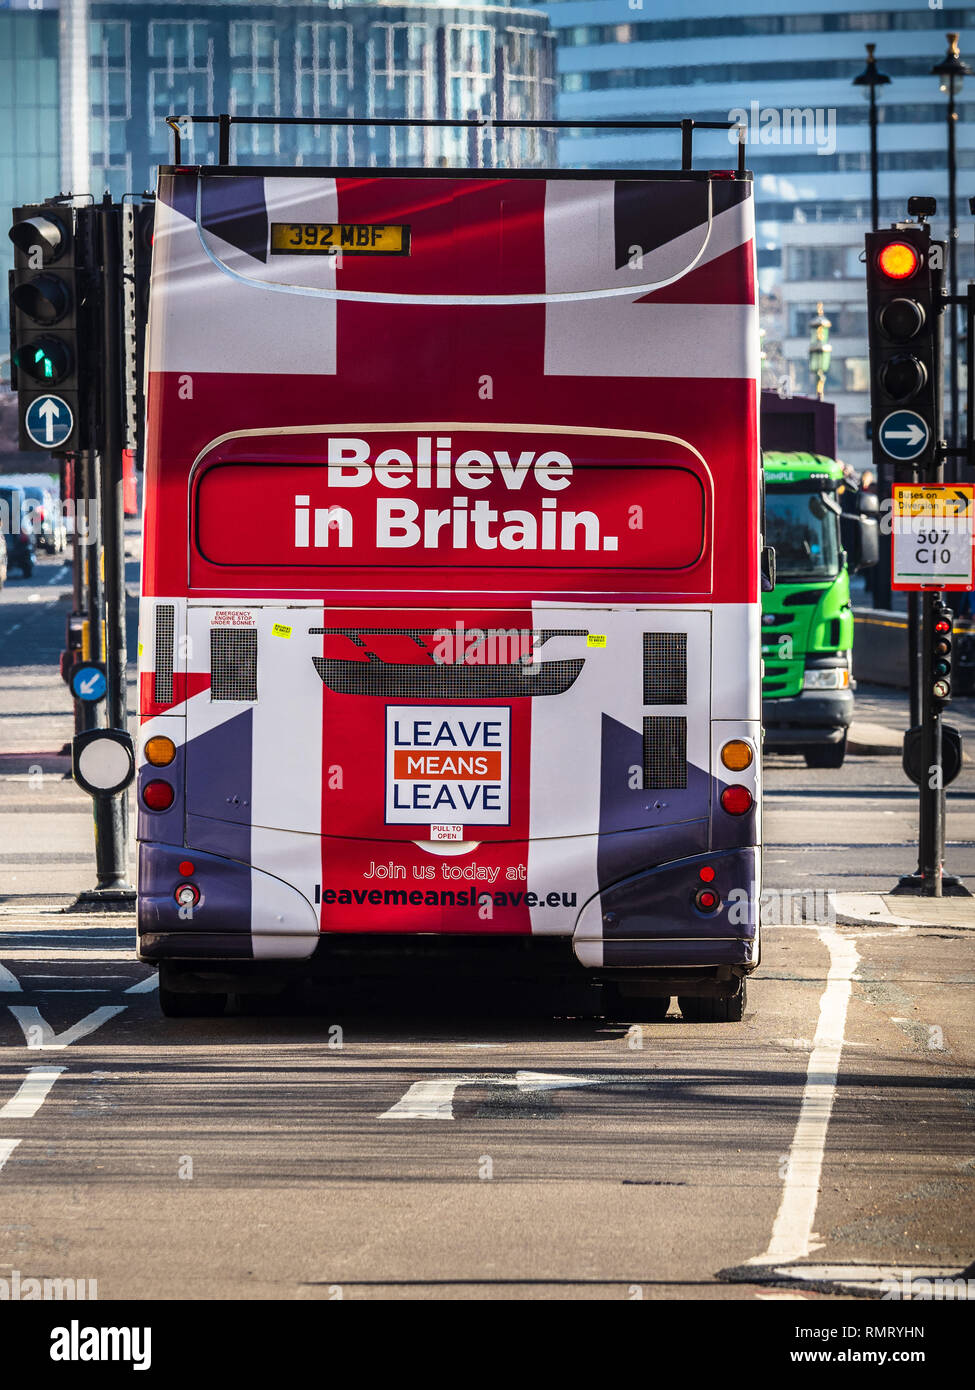 Brexit Leave Bus - Leave Campaign Believe in Britain Bus in central London near the Houses of Parliament - Stock Image